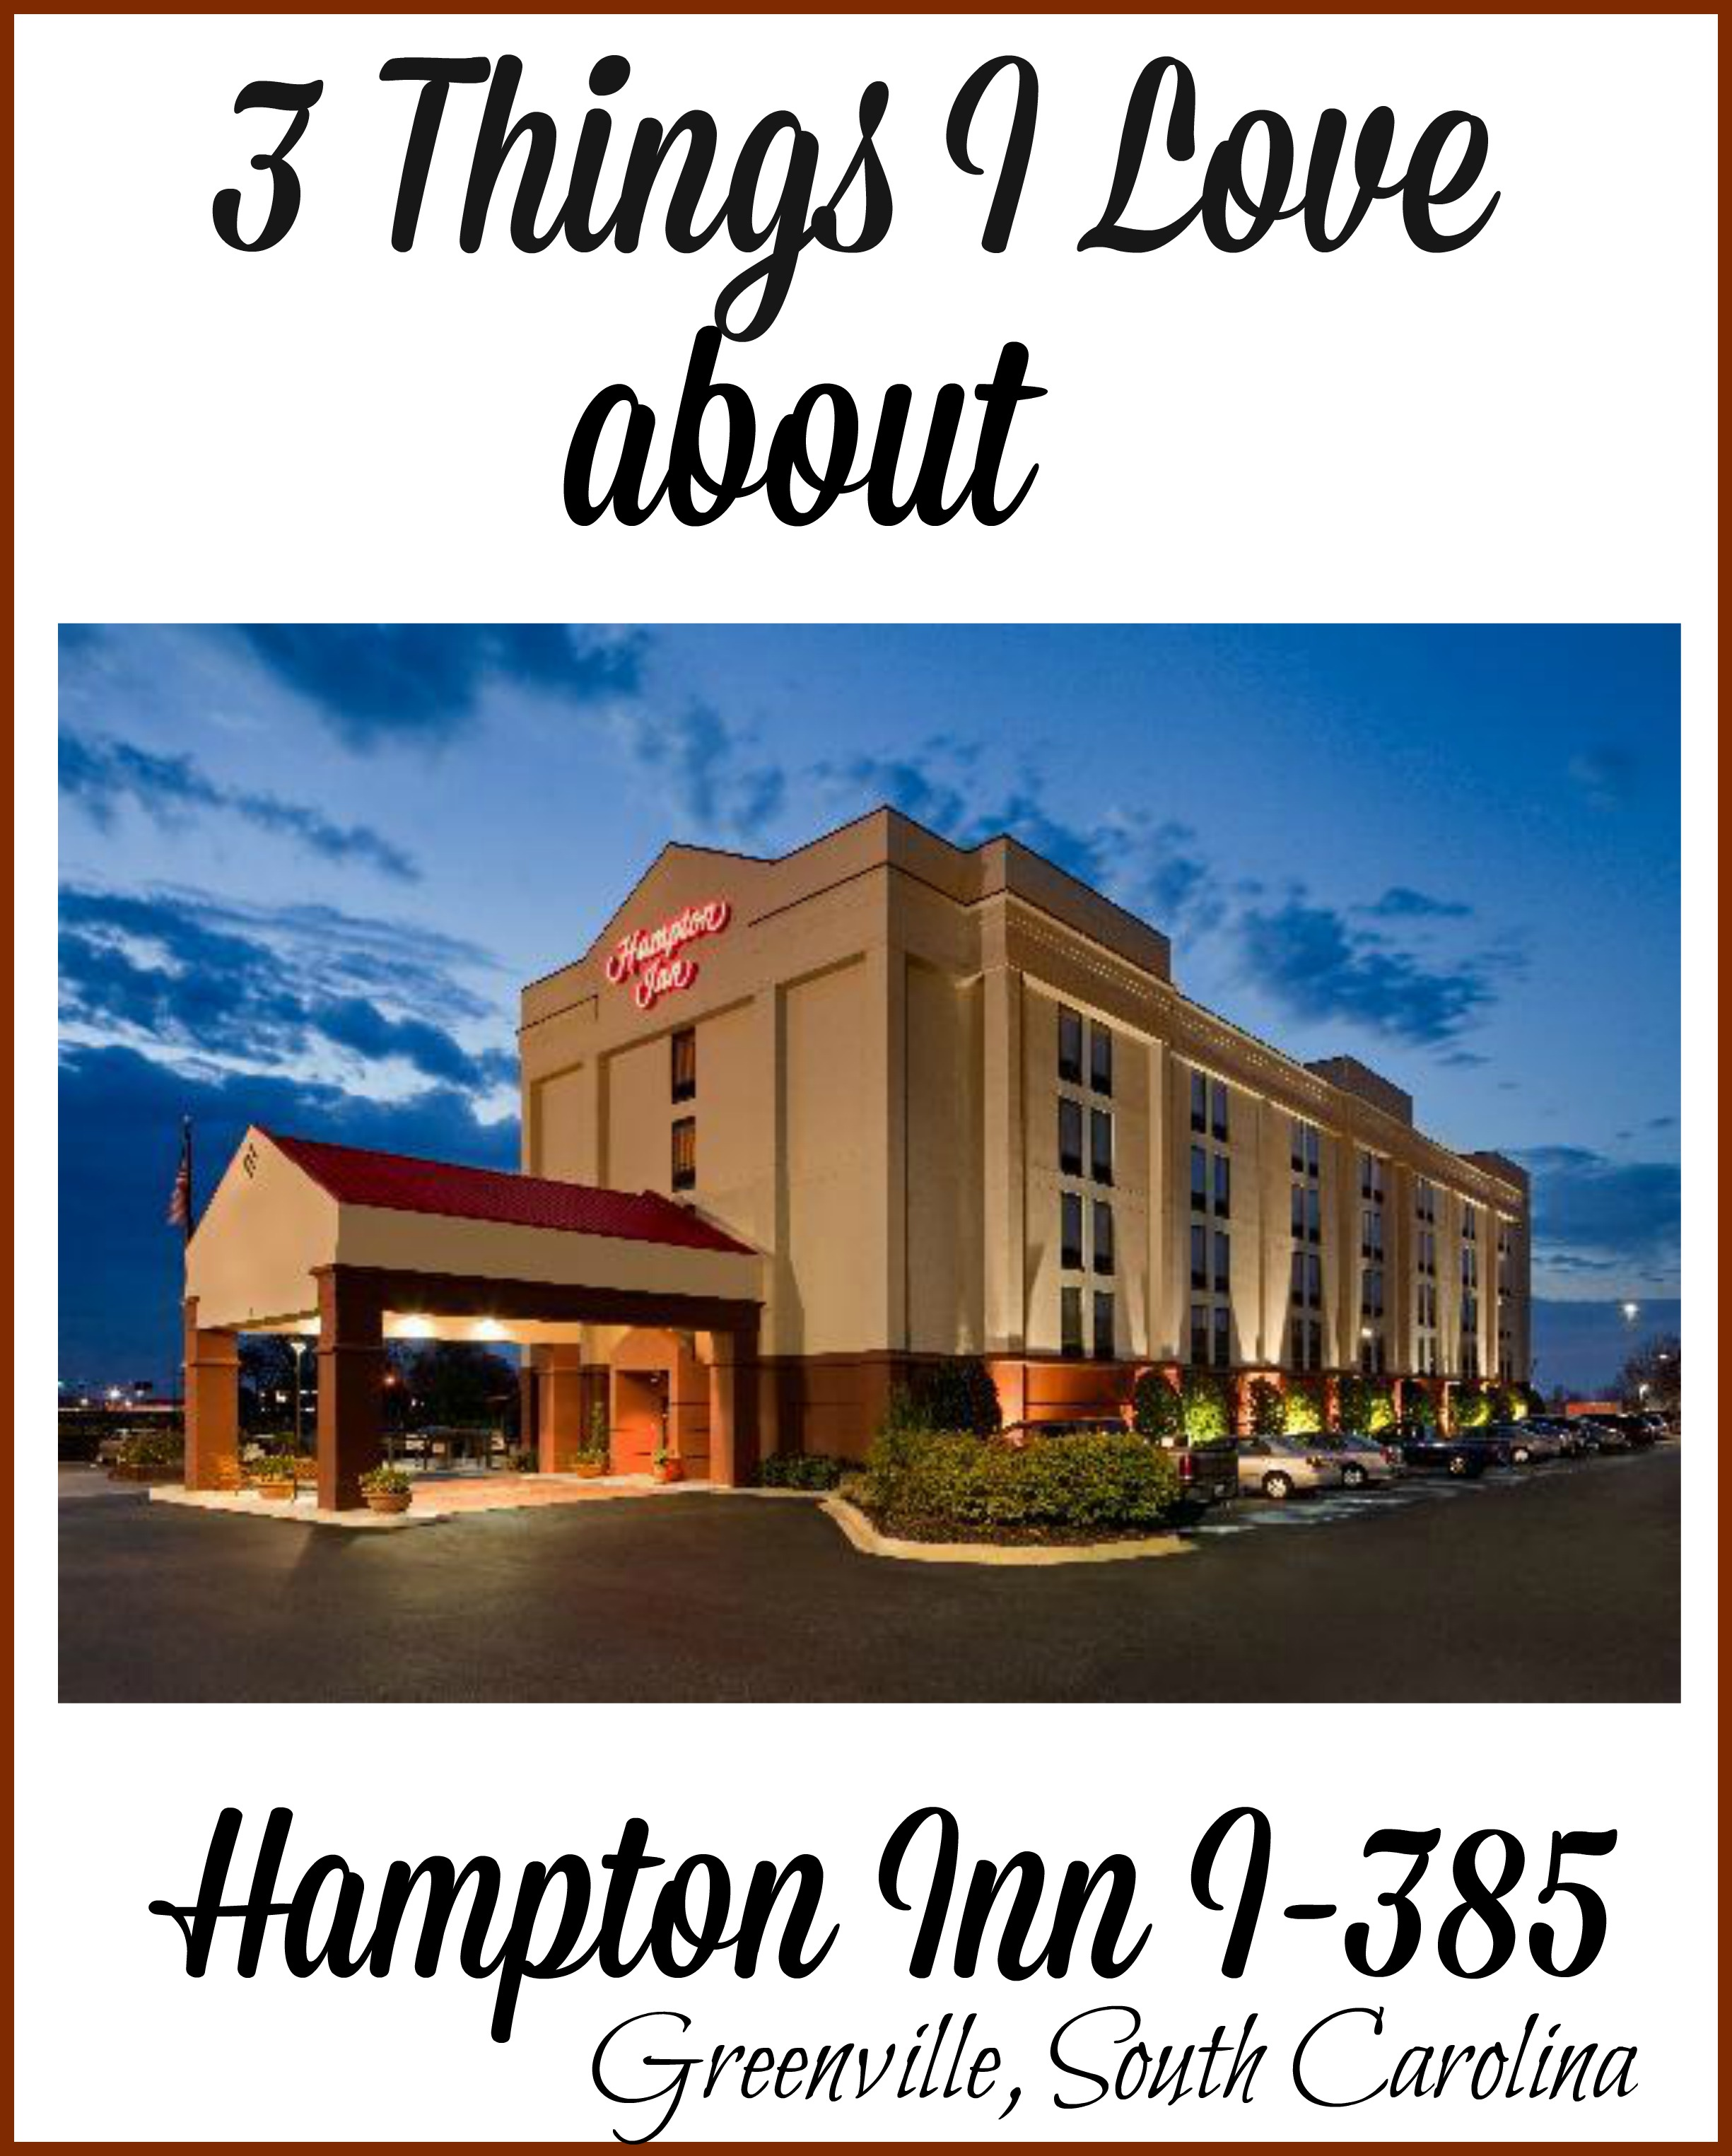 3 Things I Love About Hampton Inn I-385 in Greenville South Carolina